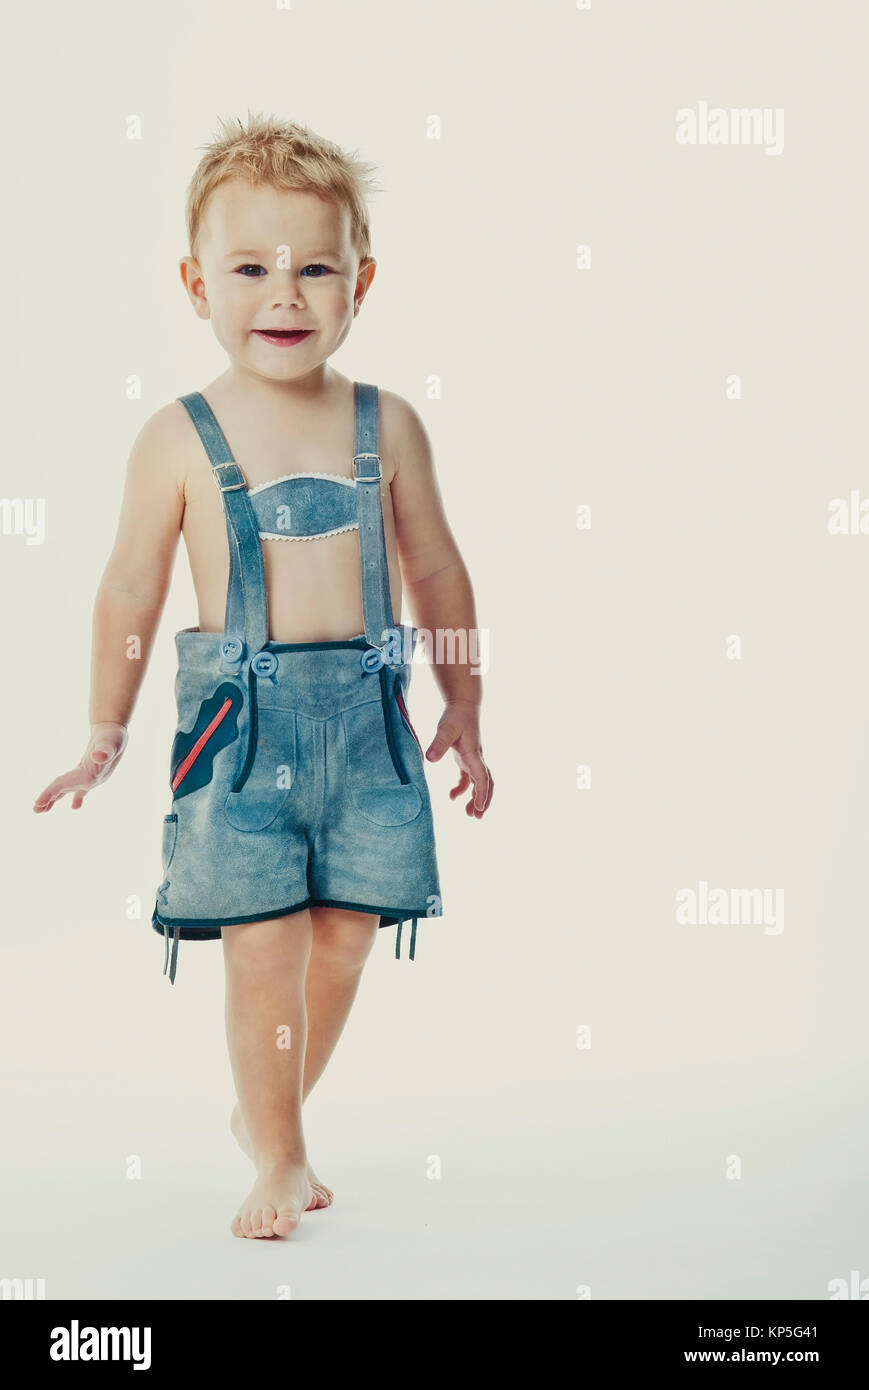 Kleiner Junge in Lederhose - little boy in leather pants - Stock Image